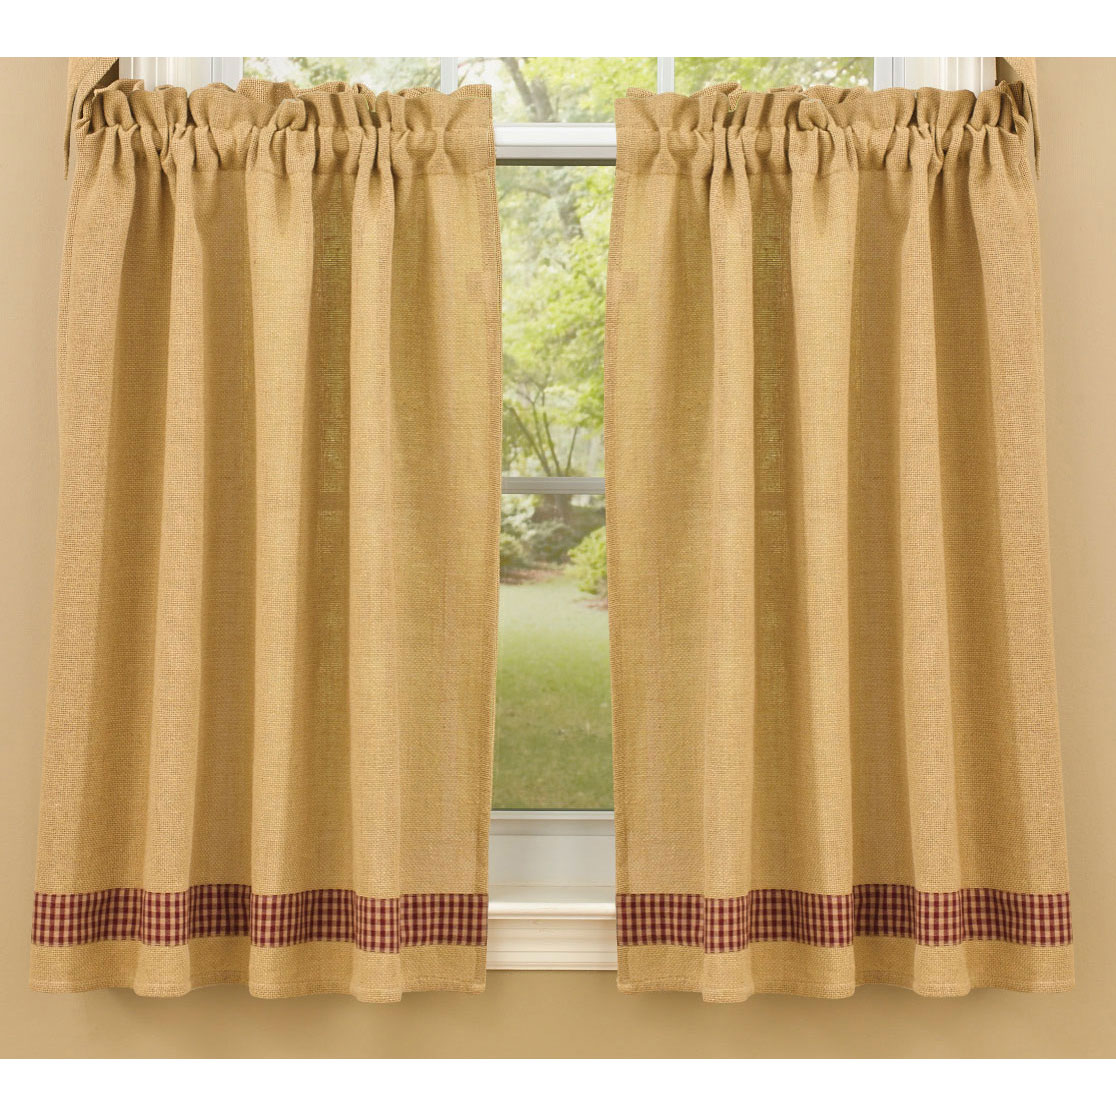 Burlap and check unlined curtain tiers by park designs 24 for Burlap designs